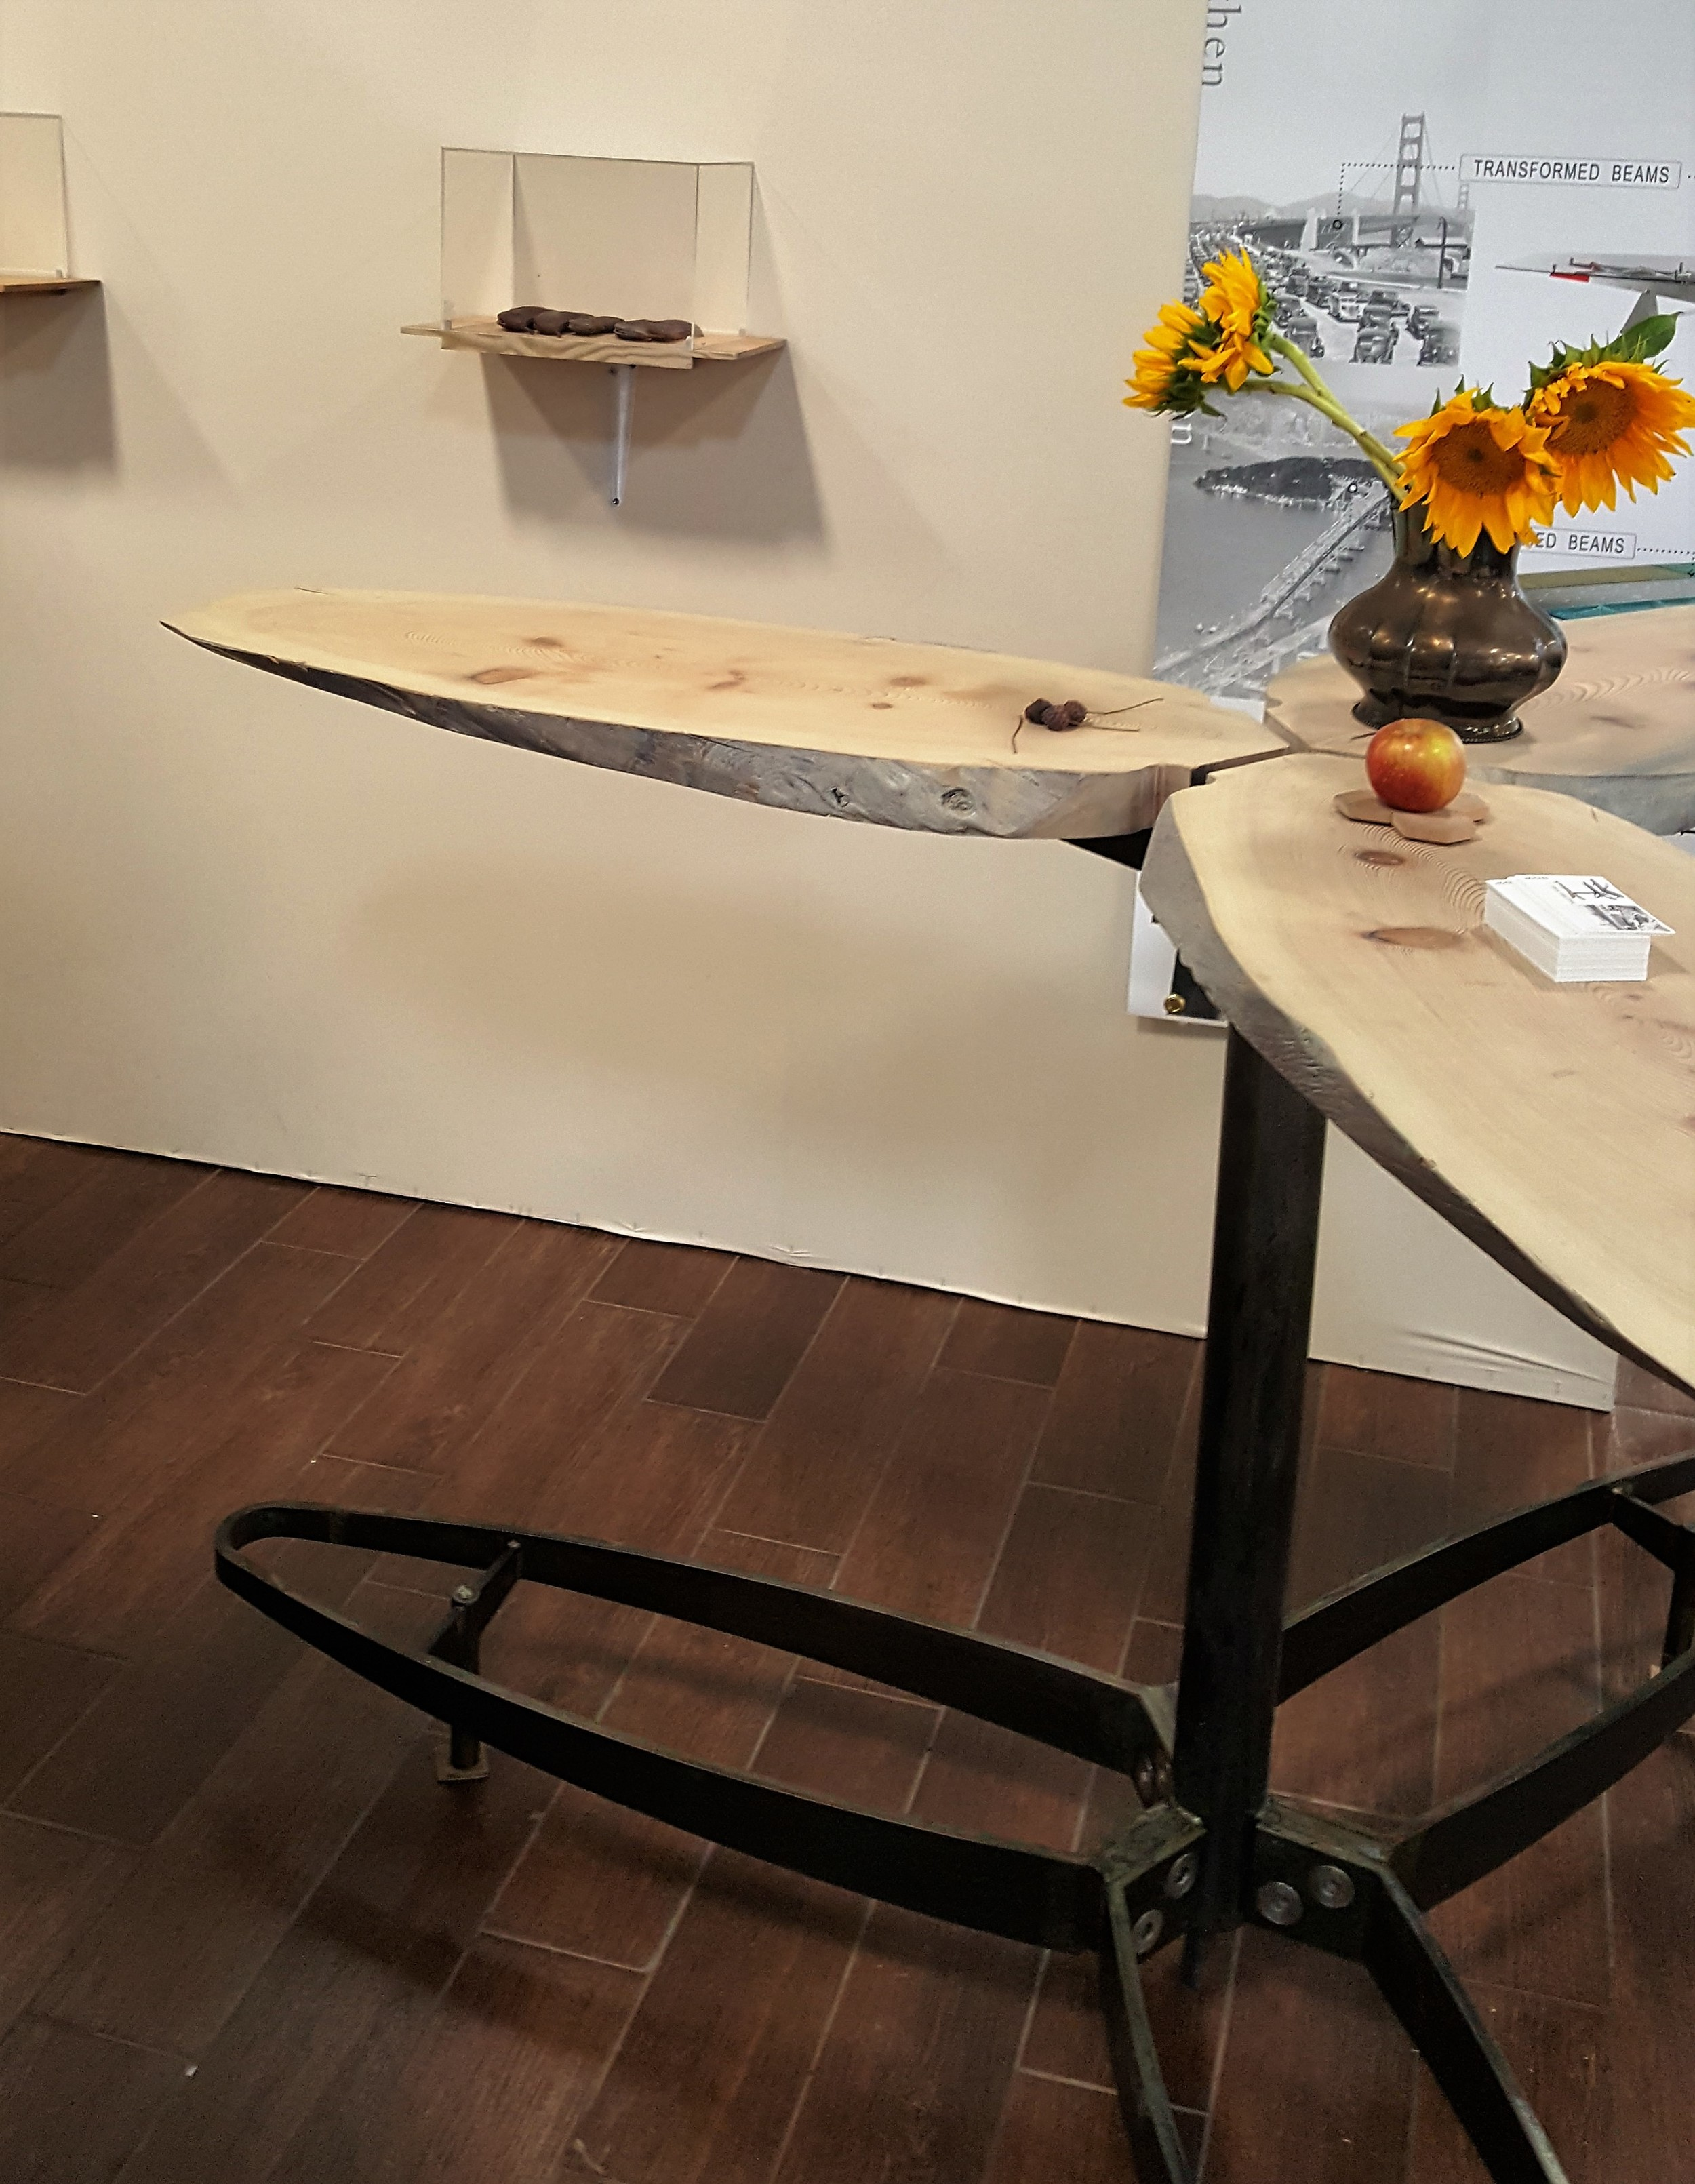 CATEGORY: FURNITURE  Propeller Table by Krivens Partners